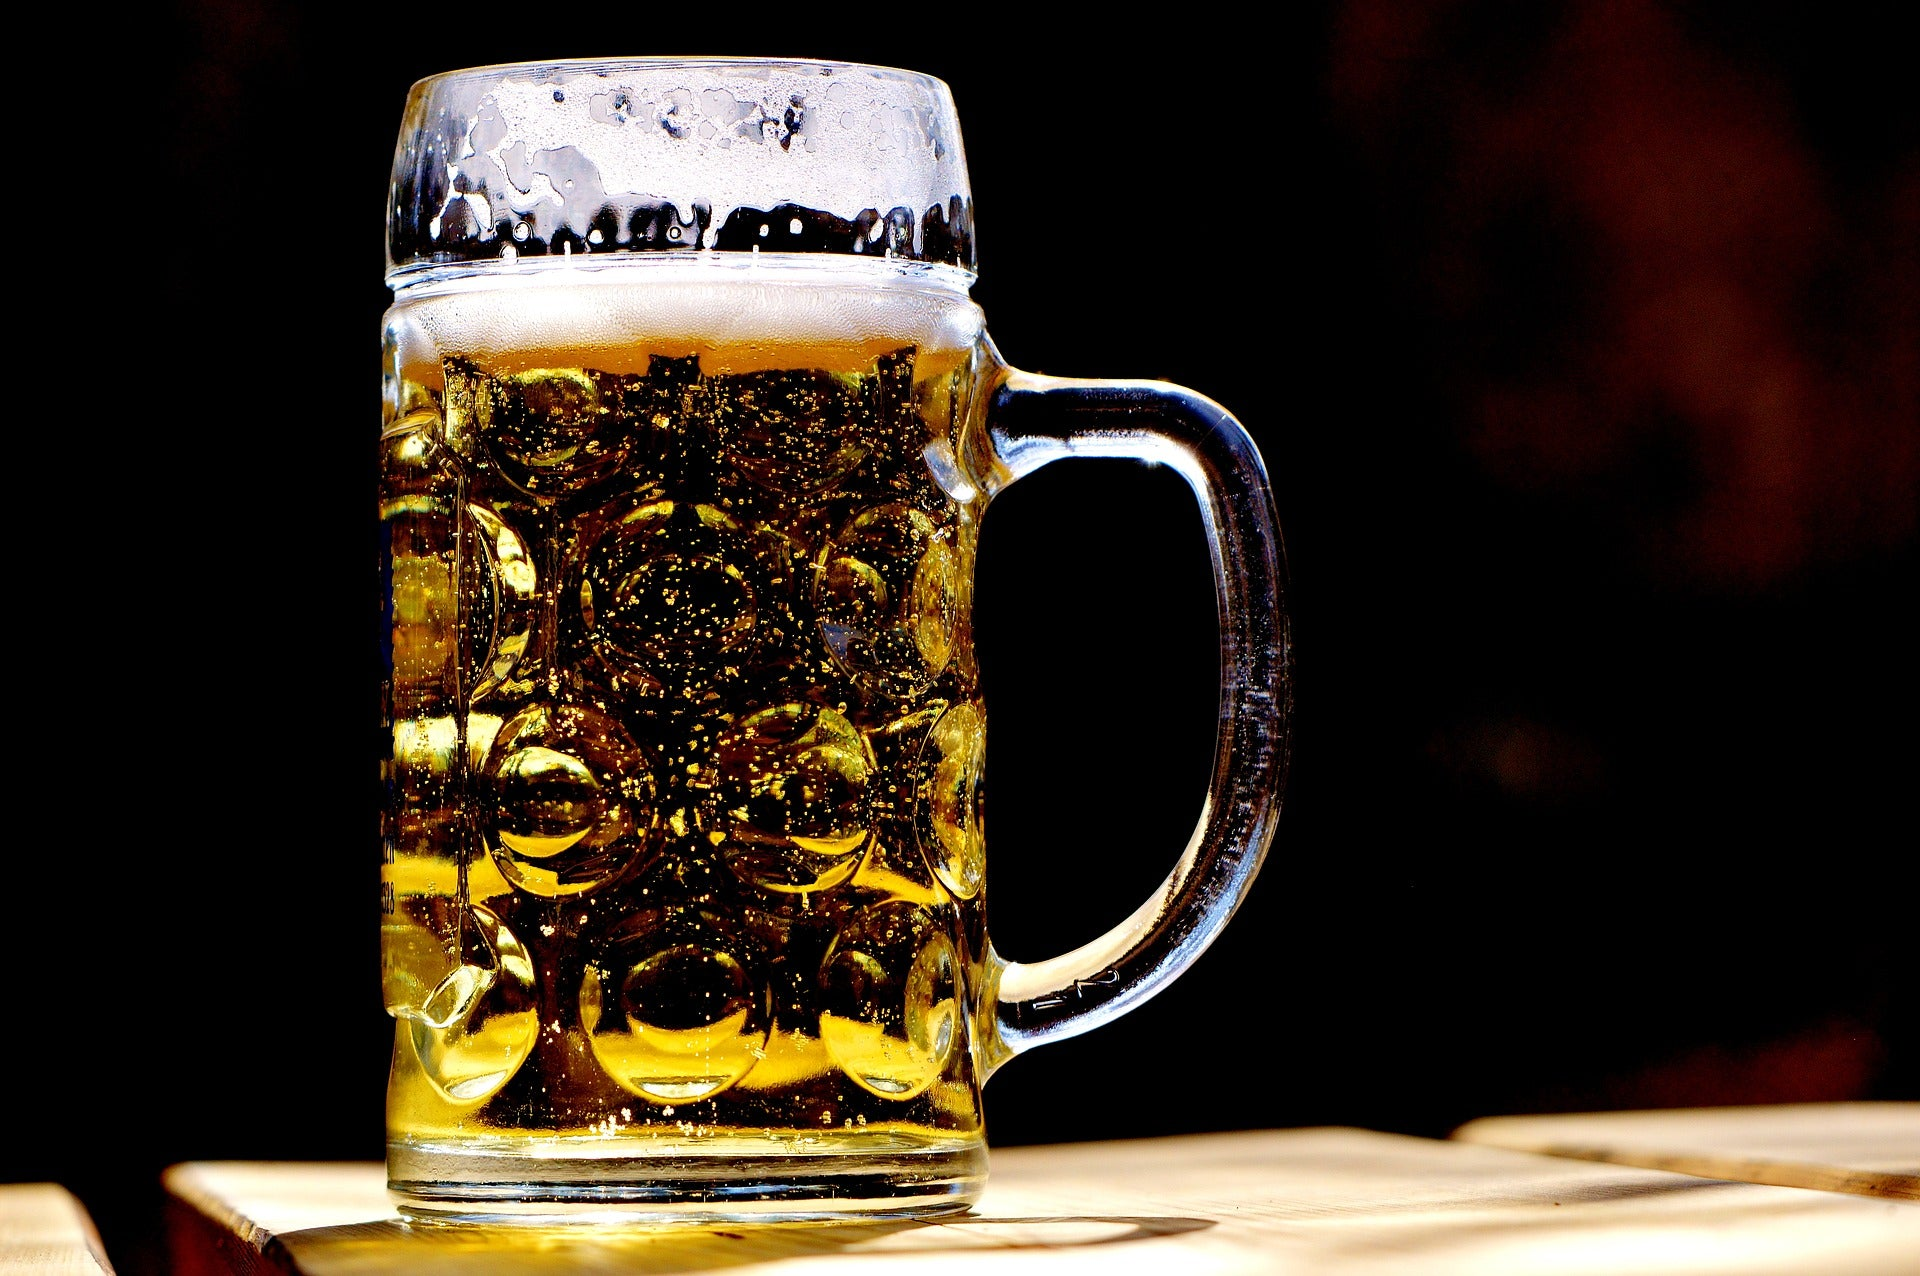 Alkoholfreies Bier: Der perfekte Post-Workout Drink?